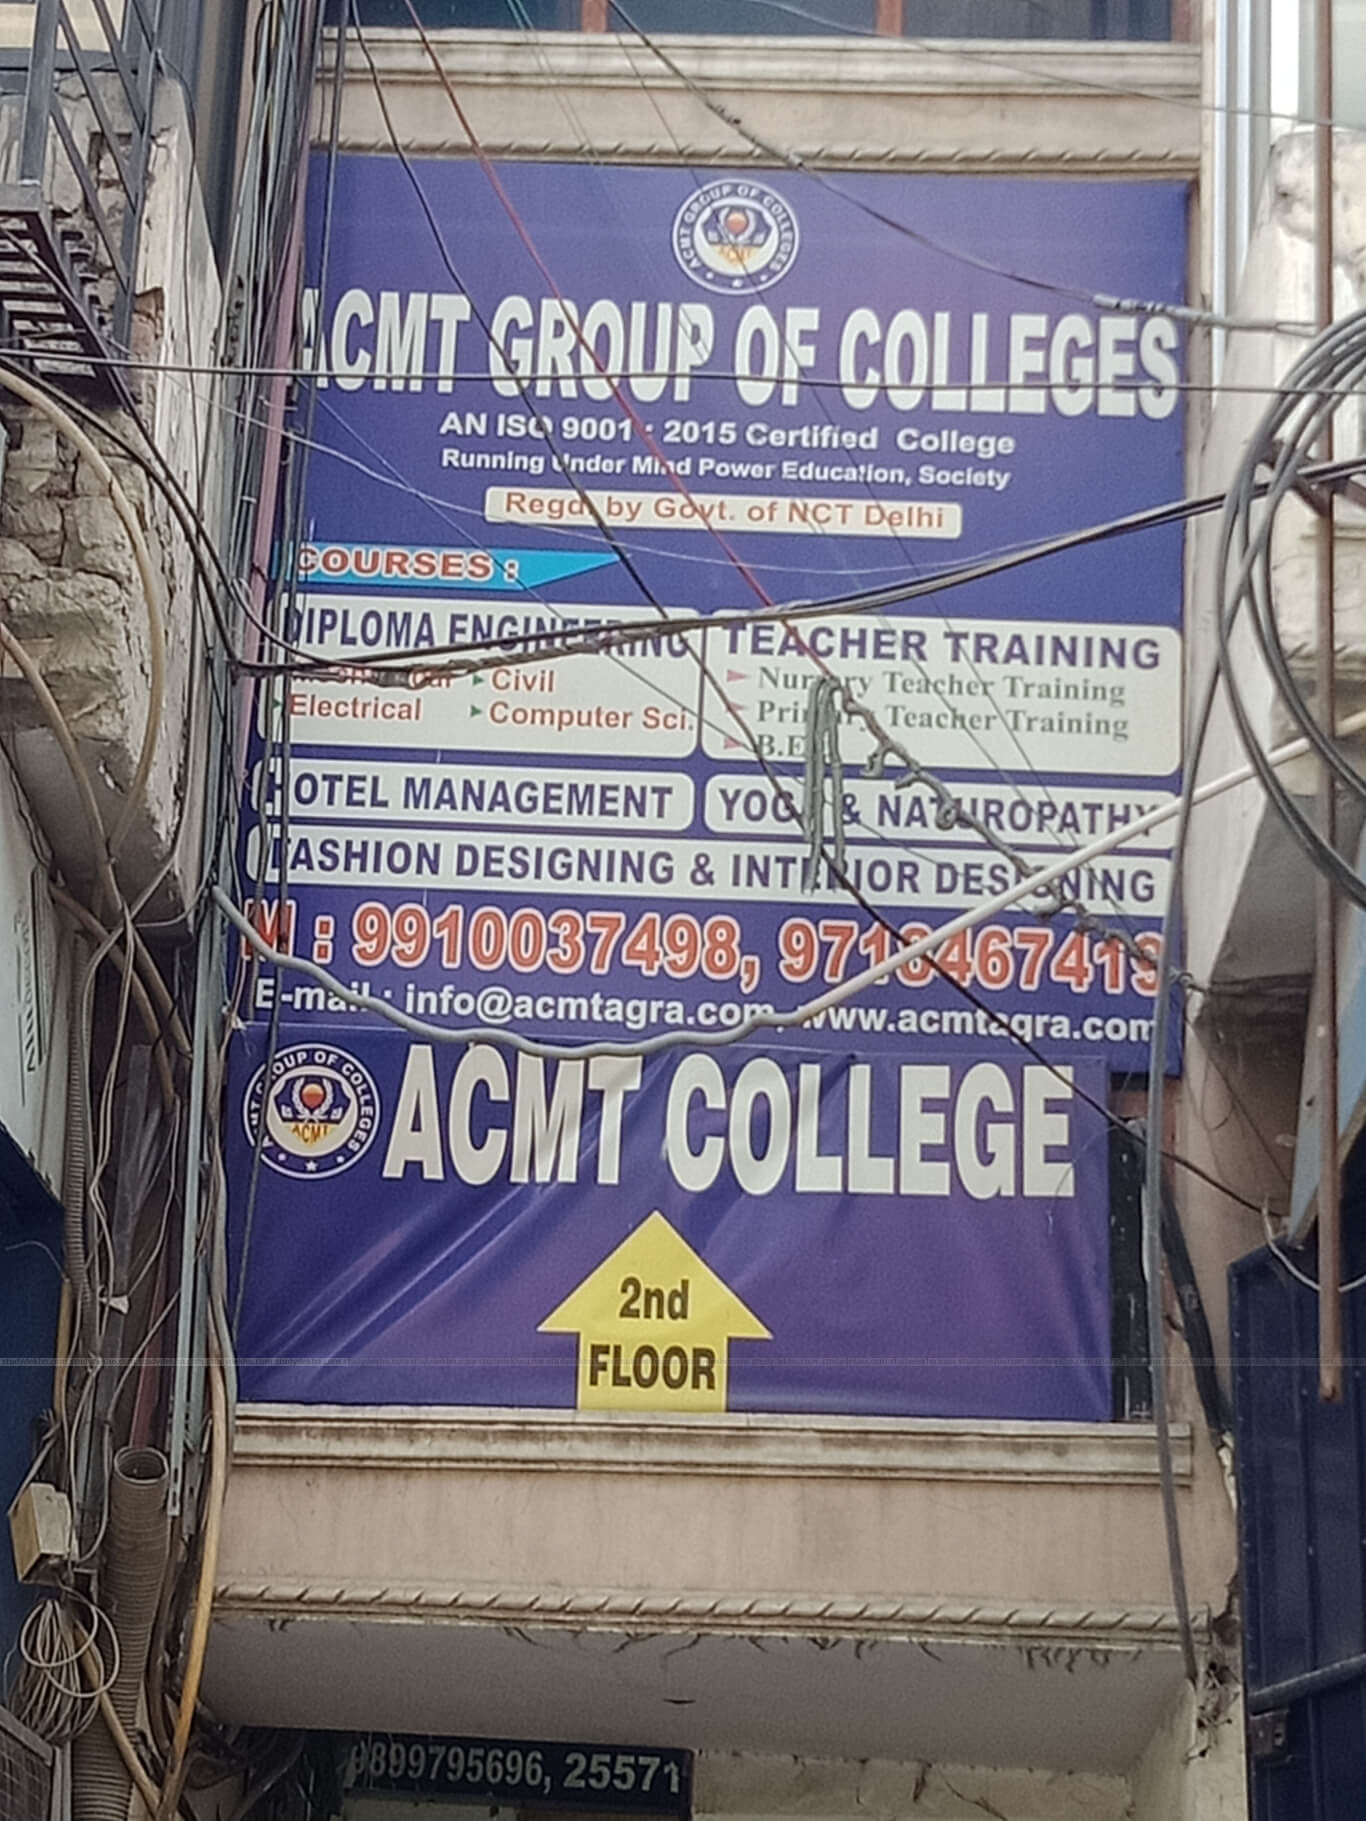 ACMT  GROUP OF COLLEGES Logo